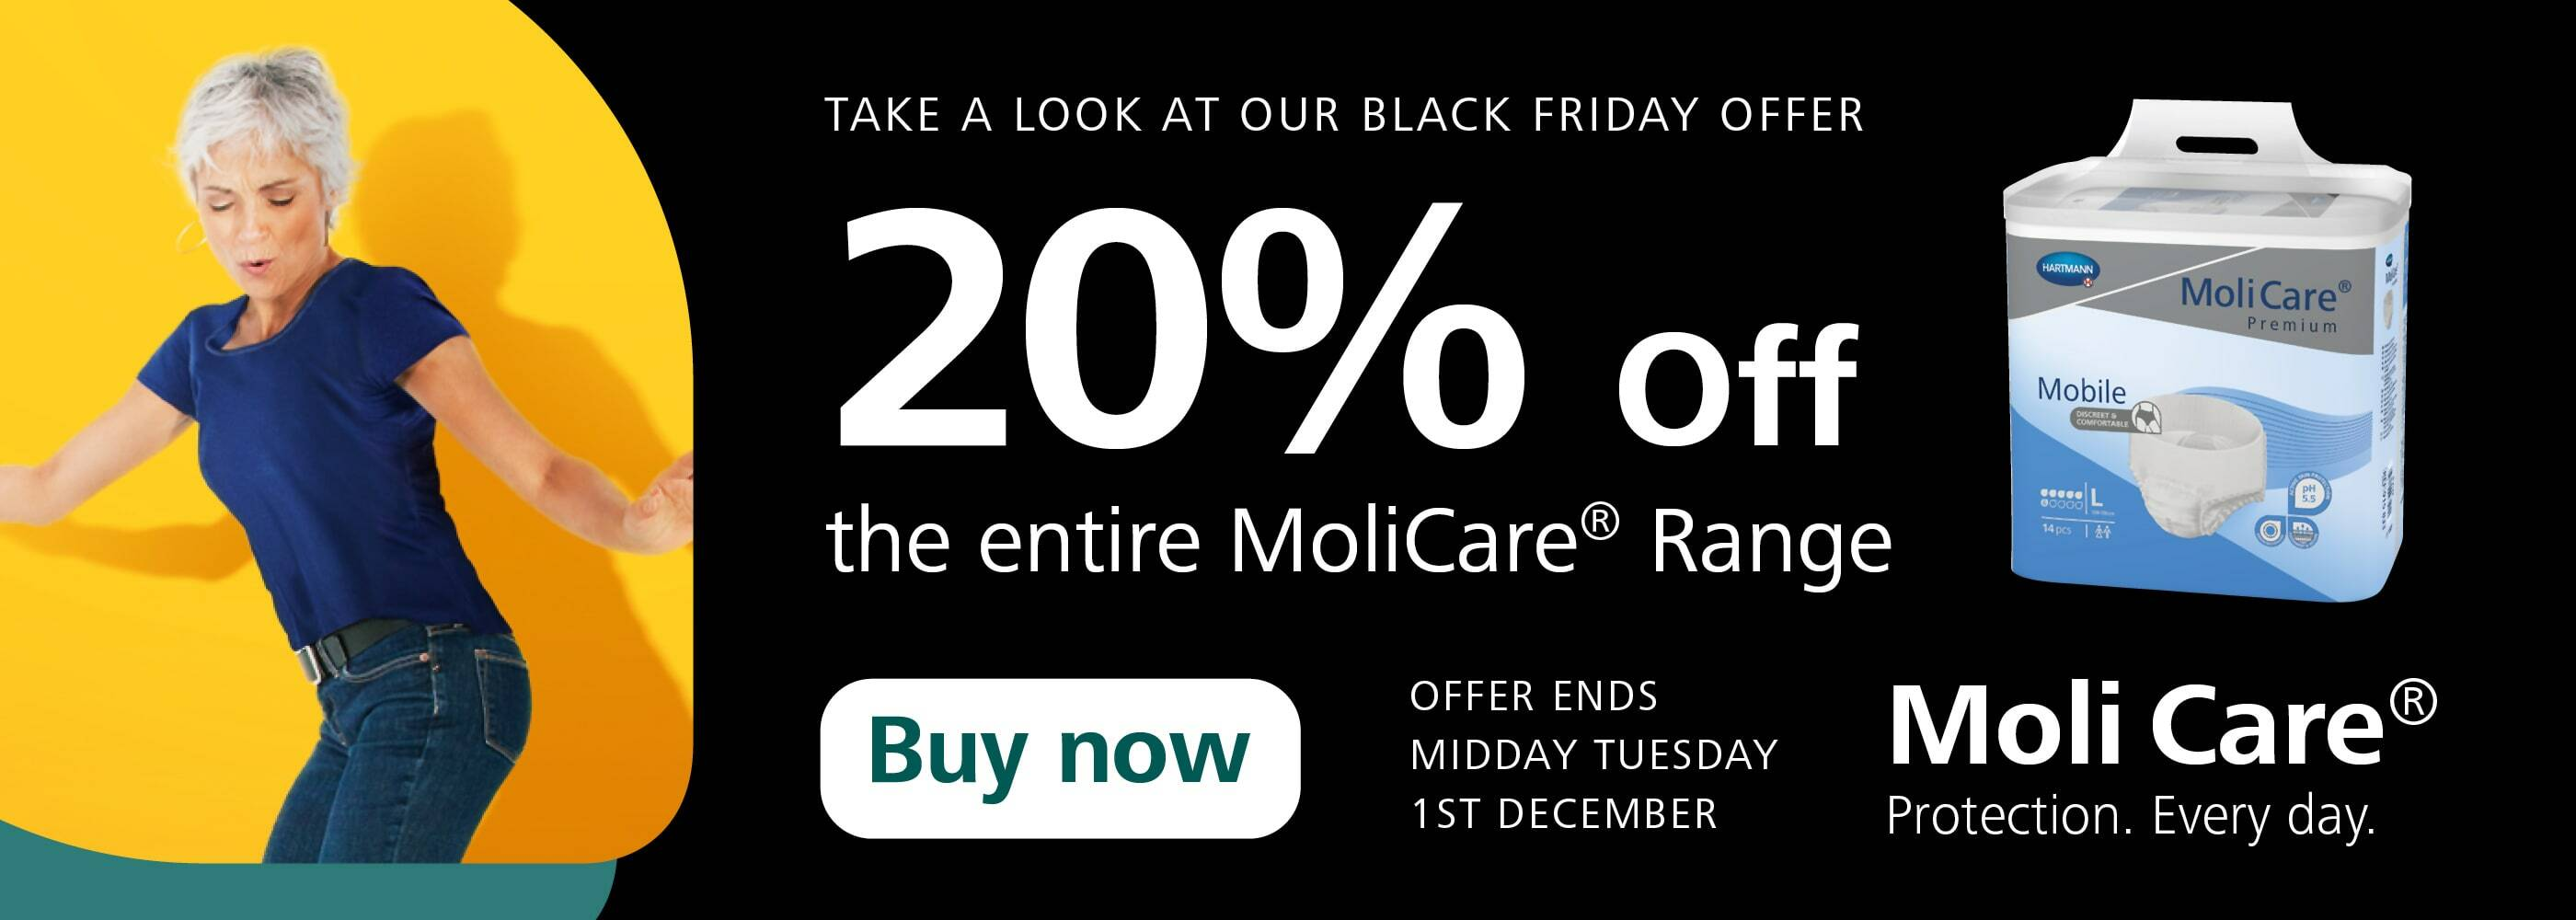 Black Friday - Save 20% MoliCare!